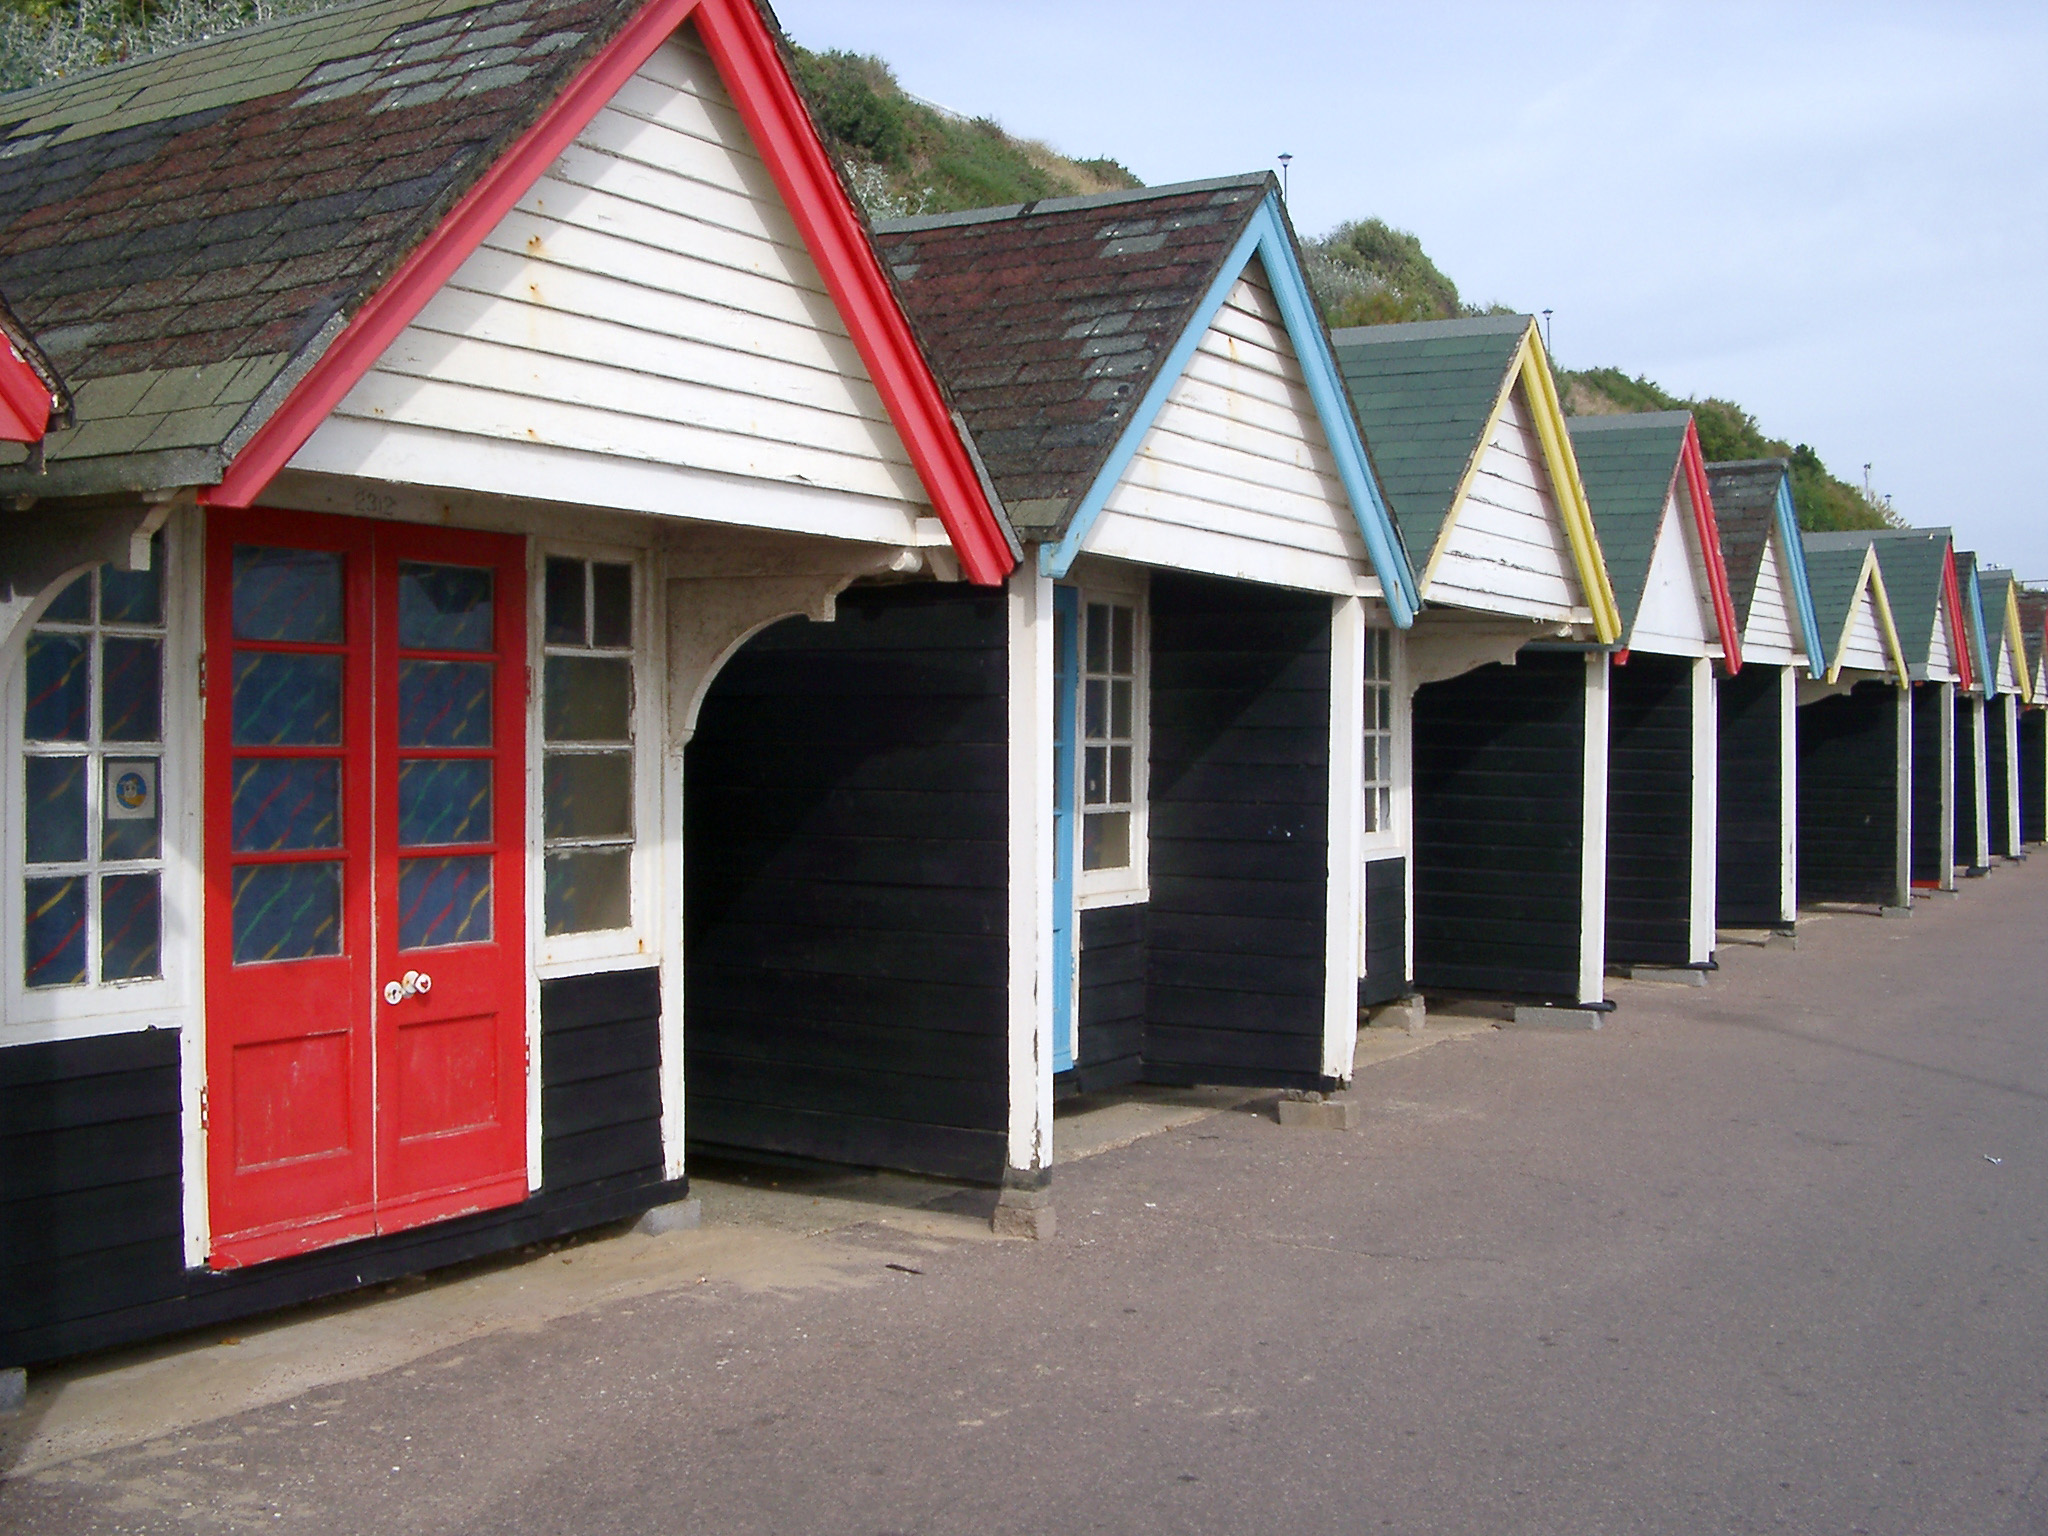 Wooden beach huts with border and doors painted in various colors, aligned along the seashore